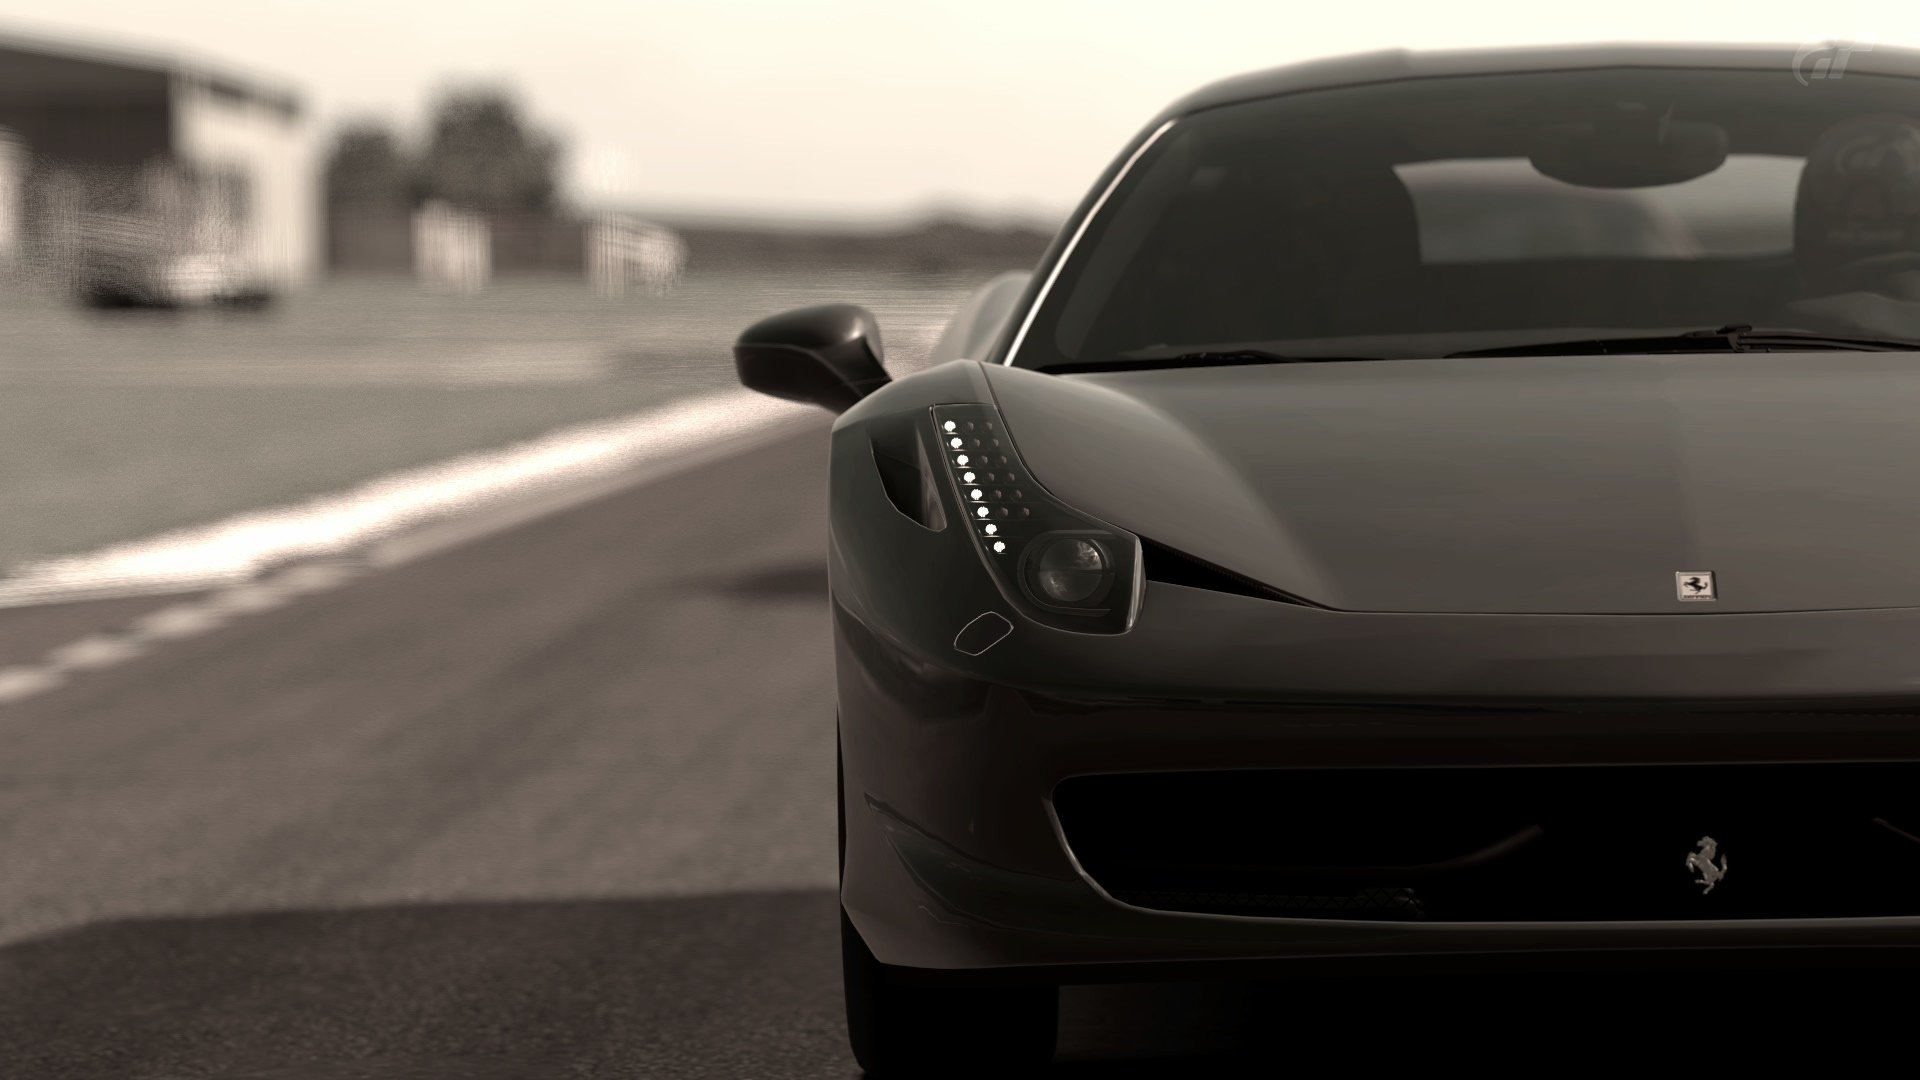 video games cars grayscale gran turismo ferrari 458 italia wallpaper 1920x1080 326221 wallpaperup - Ferrari 458 Italia Wallpaper 19201080